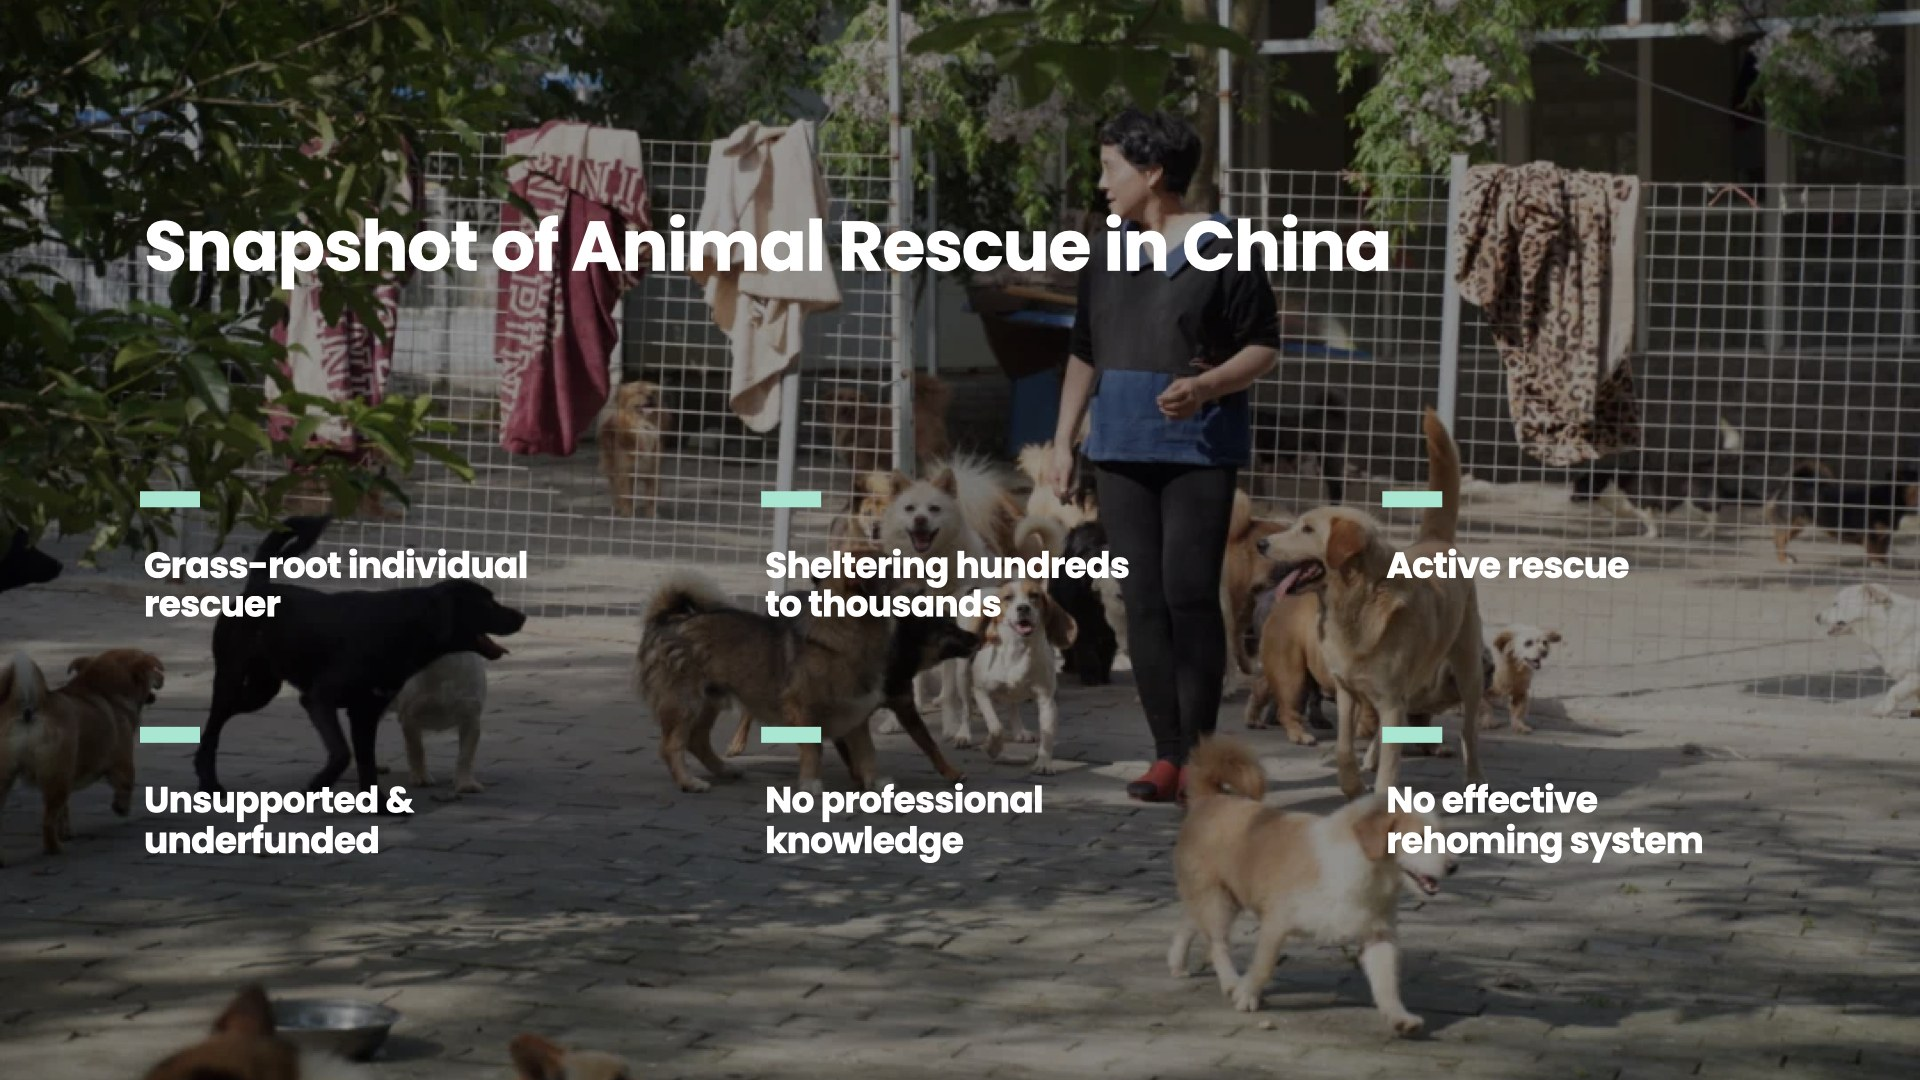 A snapshot of animal rescue in China